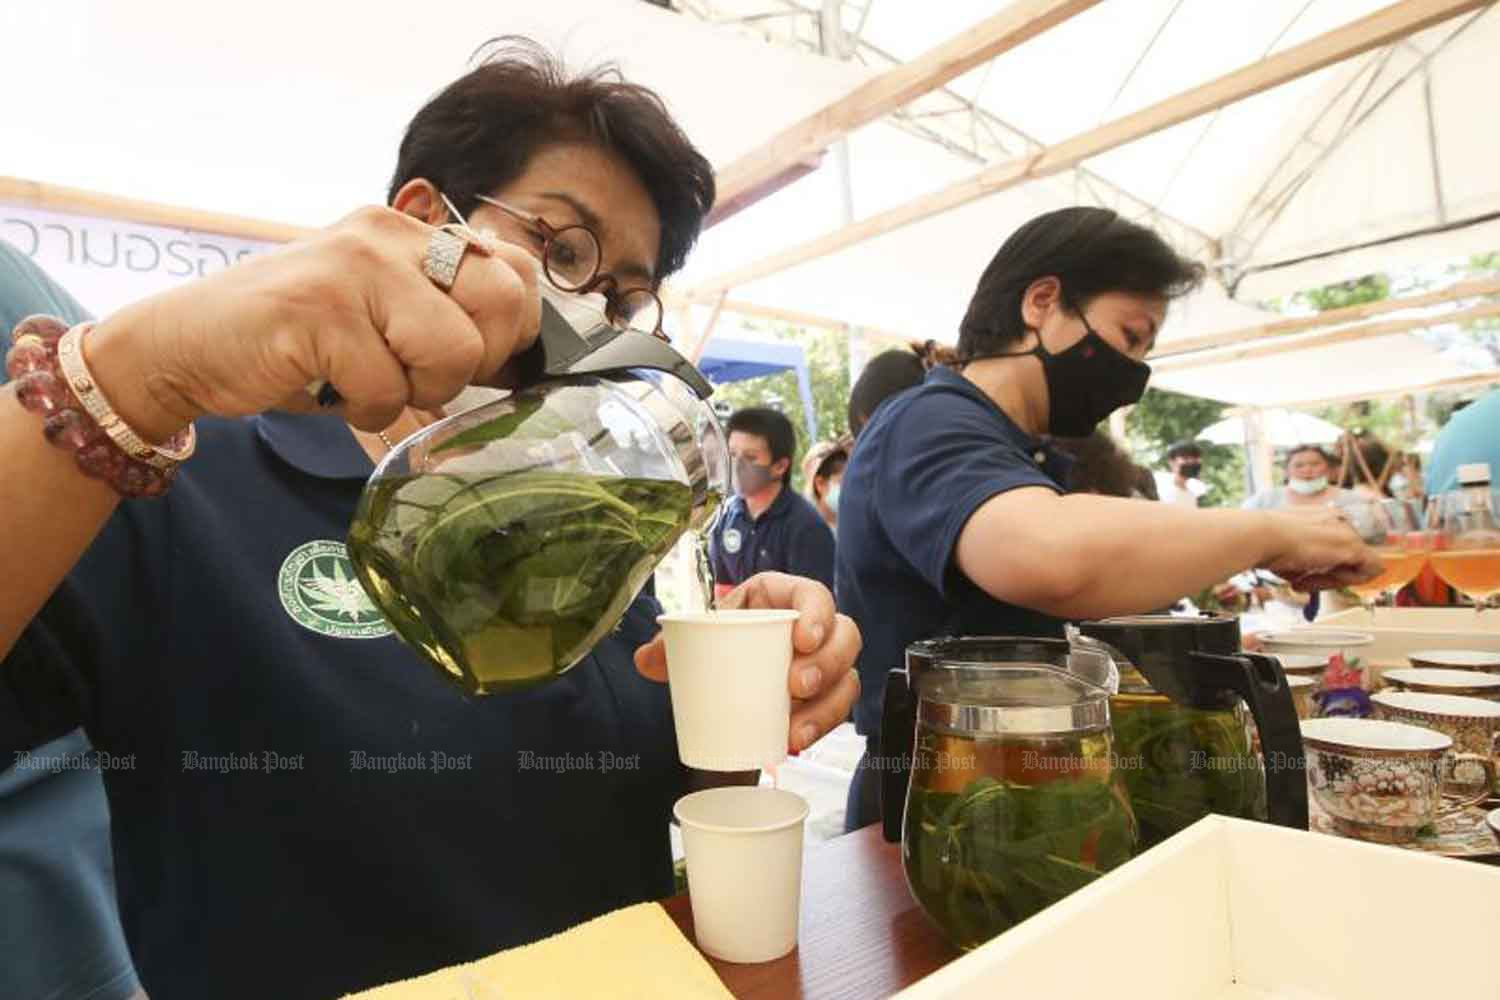 Officials of the Department of Thai Traditional and Alternative Medicine make cannabis tea in a demonstration of legal cannabis use at the Public Health Ministry in Nonthaburi province on Monday. (Photo by Pattarapong Chatpattarasill)